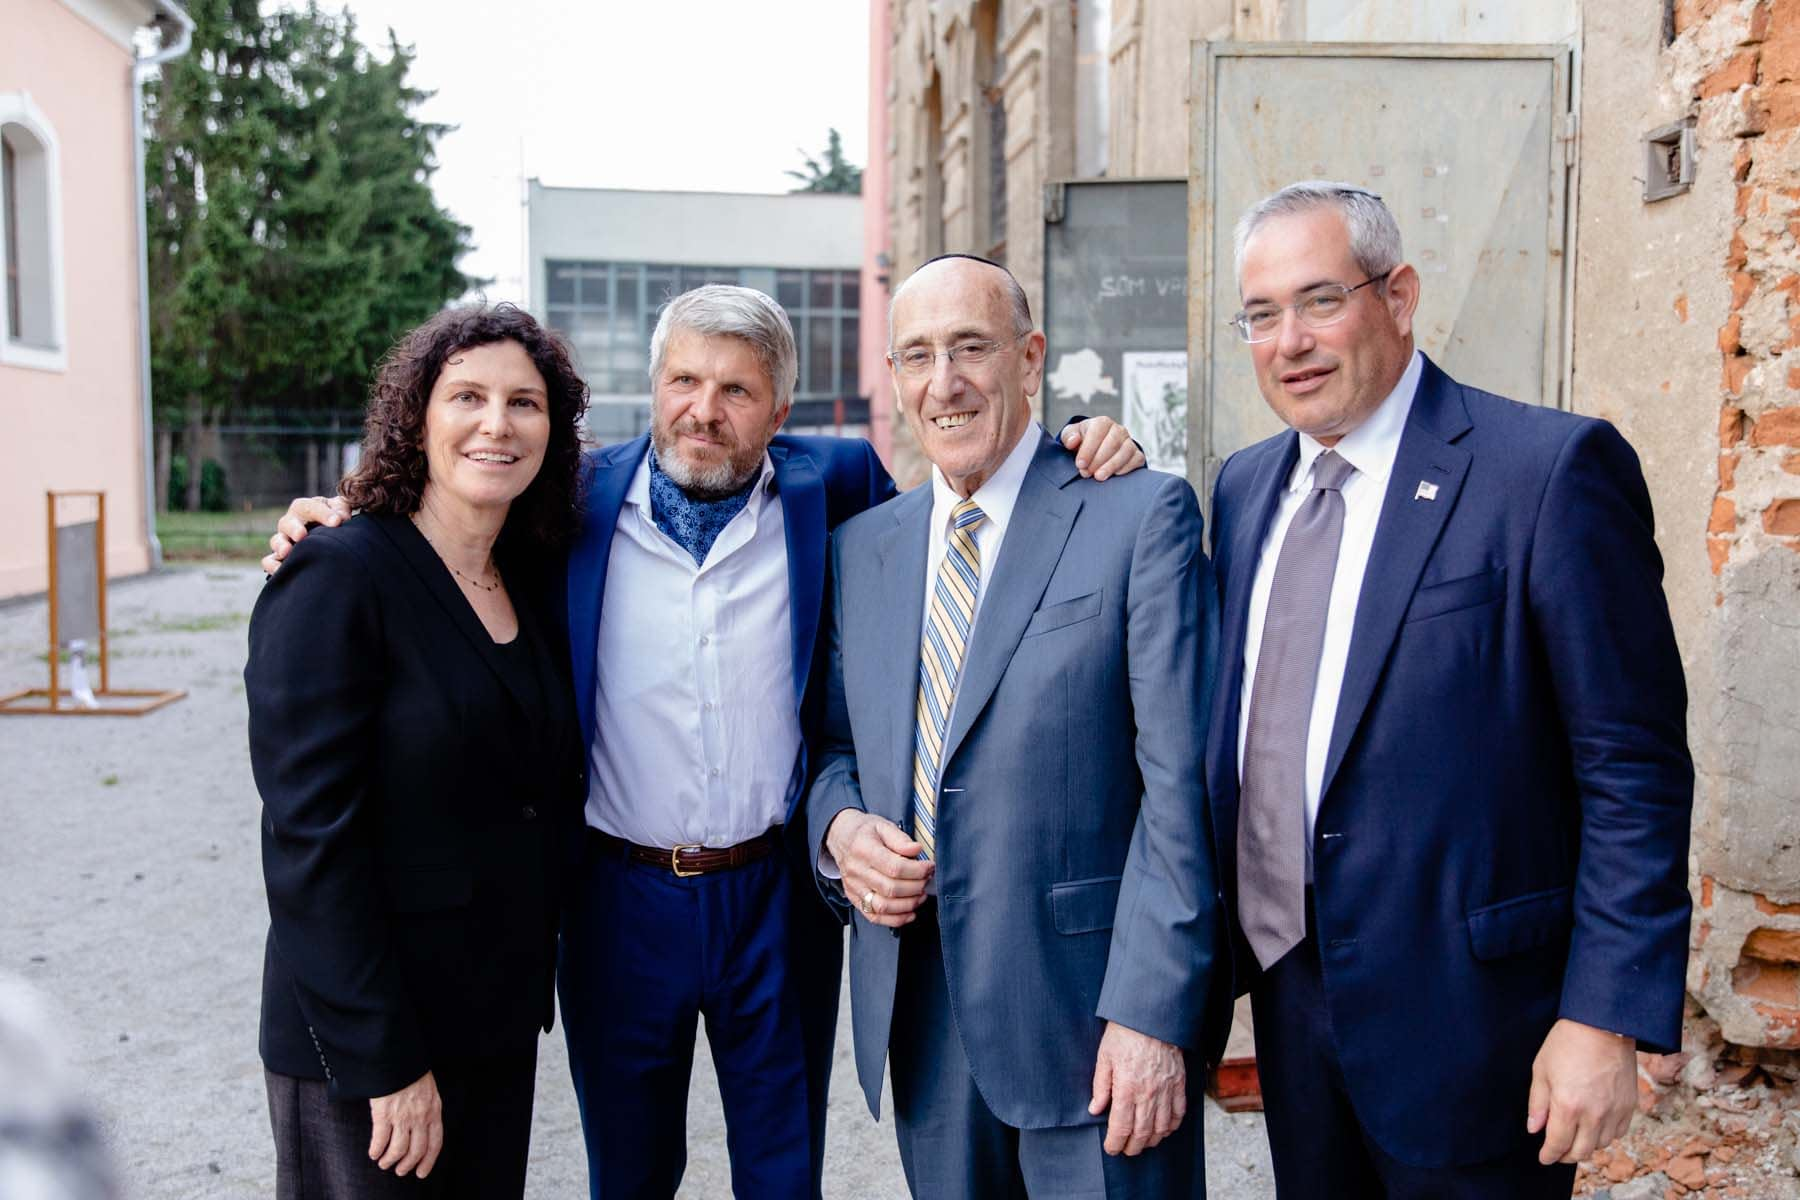 From left: Ms. Orit Stieglitz, Mr. Peter Absolon, Mr. Emil Fish, and Mr. Paul Packer outside the Old Synagogue after the event